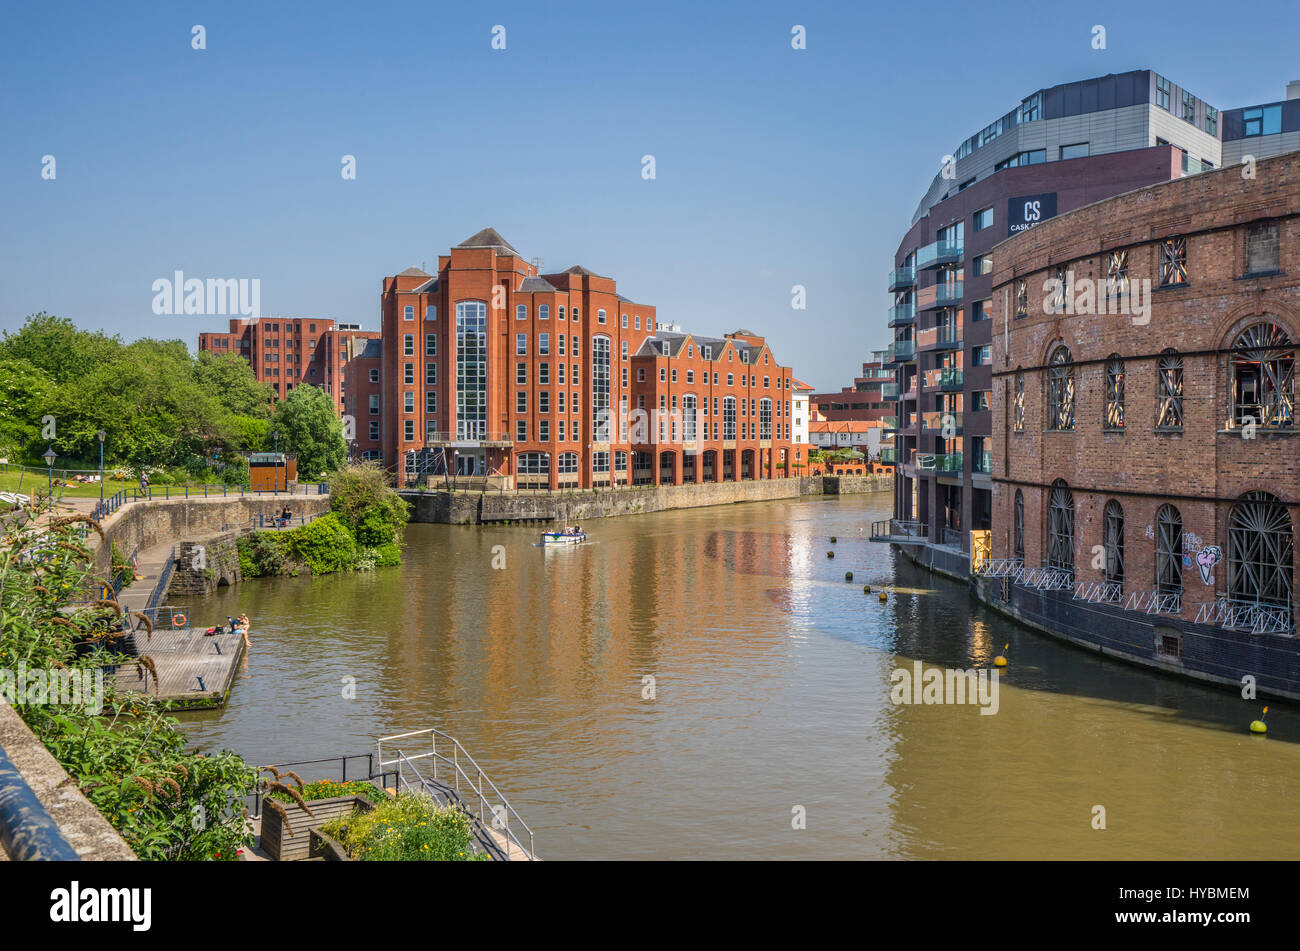 United Kingdom, South West England, Bristol, view of the Floating Harbour with redeveloped warehouses and the prominent - Stock Image